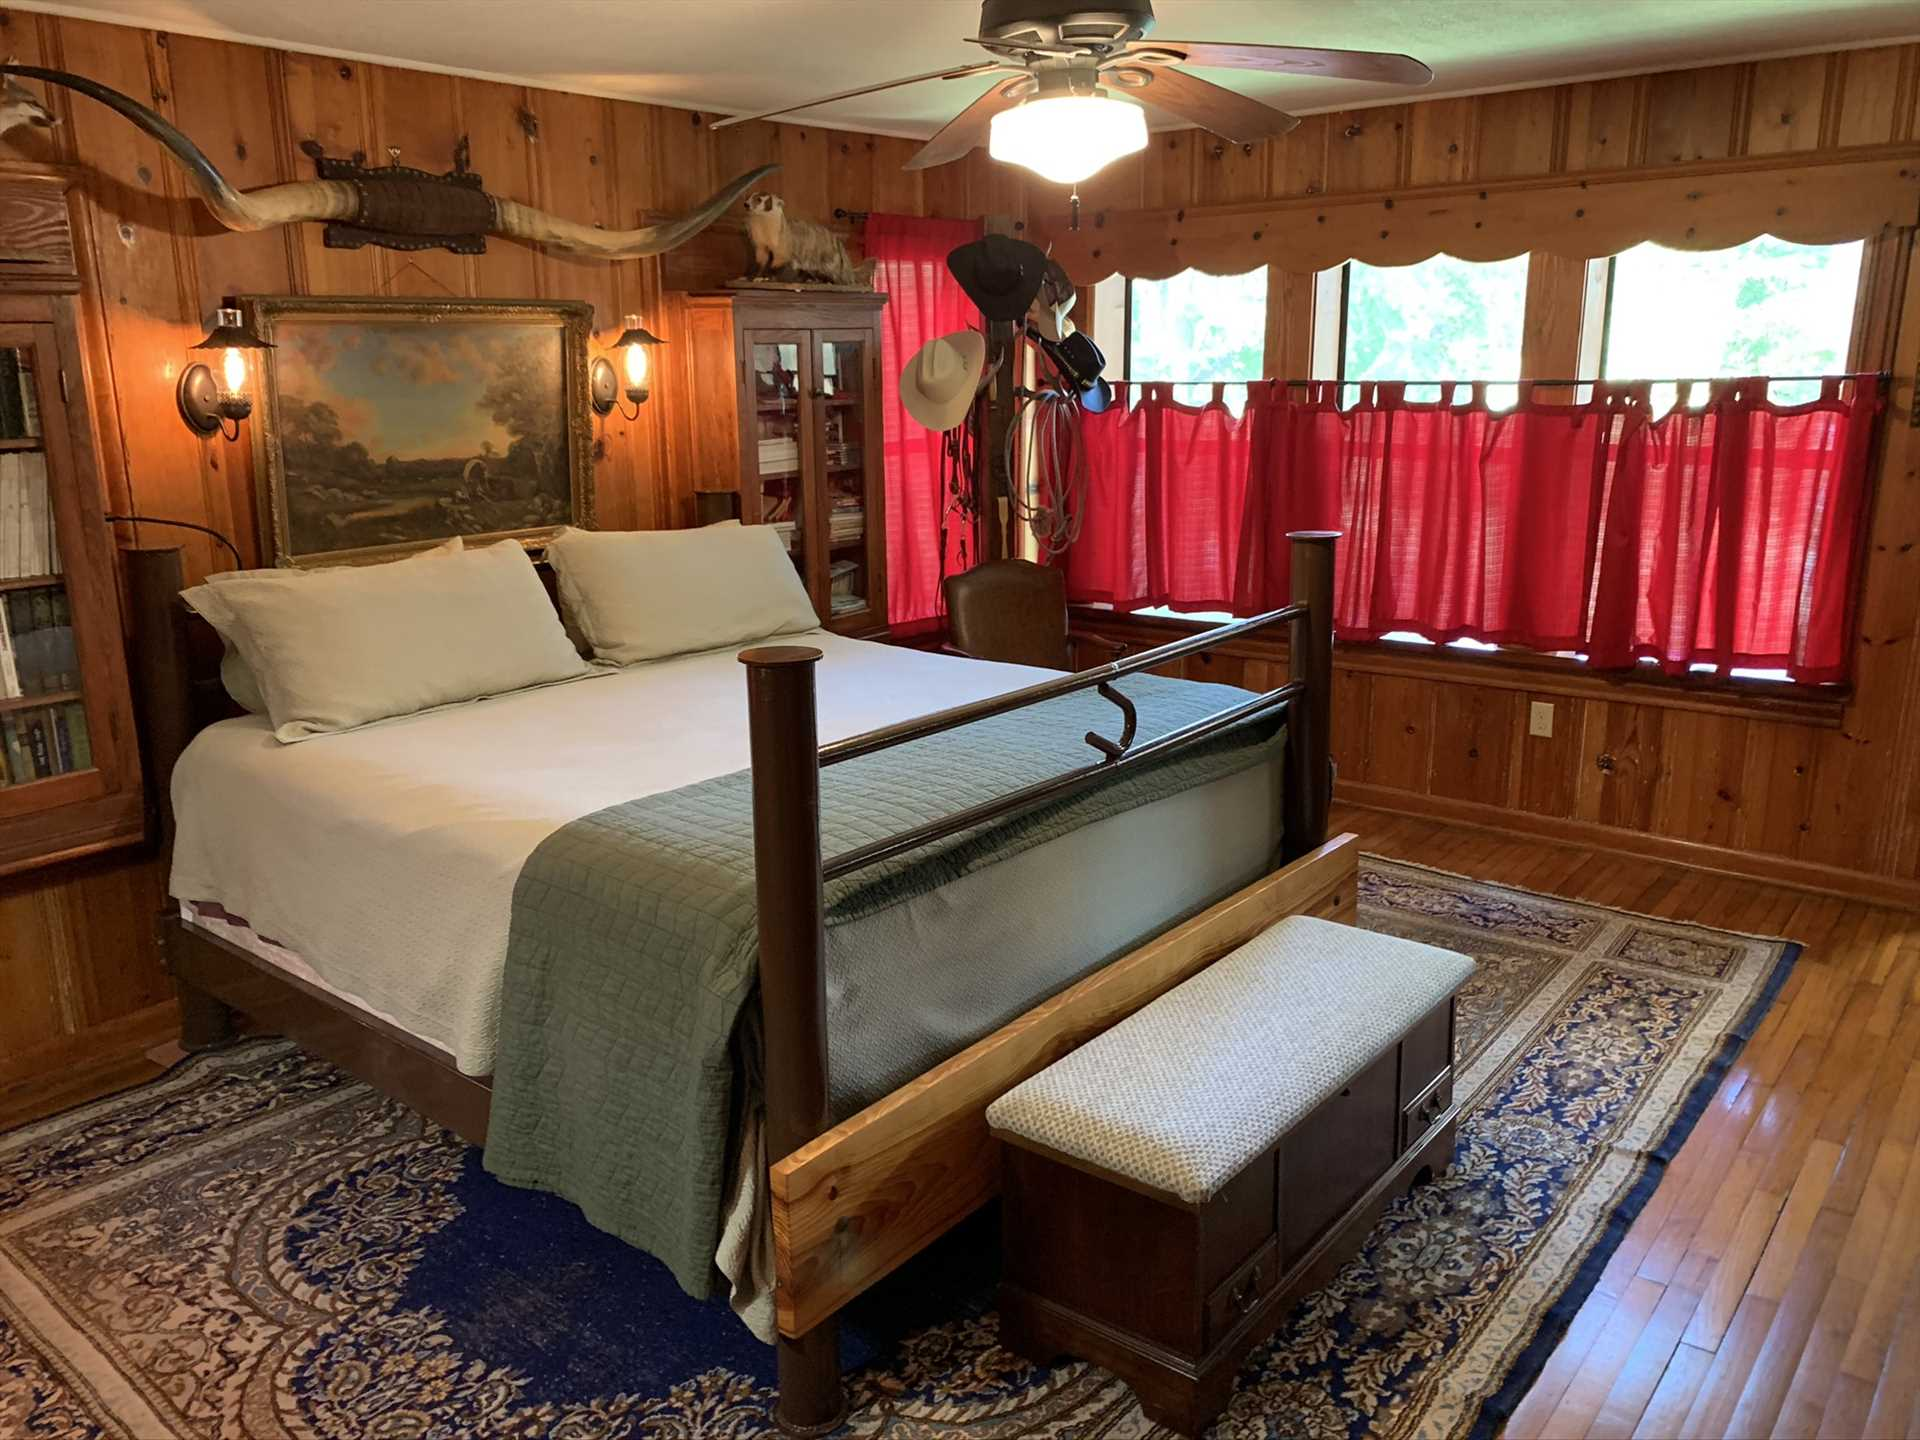 No cheap modular furniture or dime store paneling here! The Lodge has been meticulously appointed to create a serene and relaxing atmosphere.